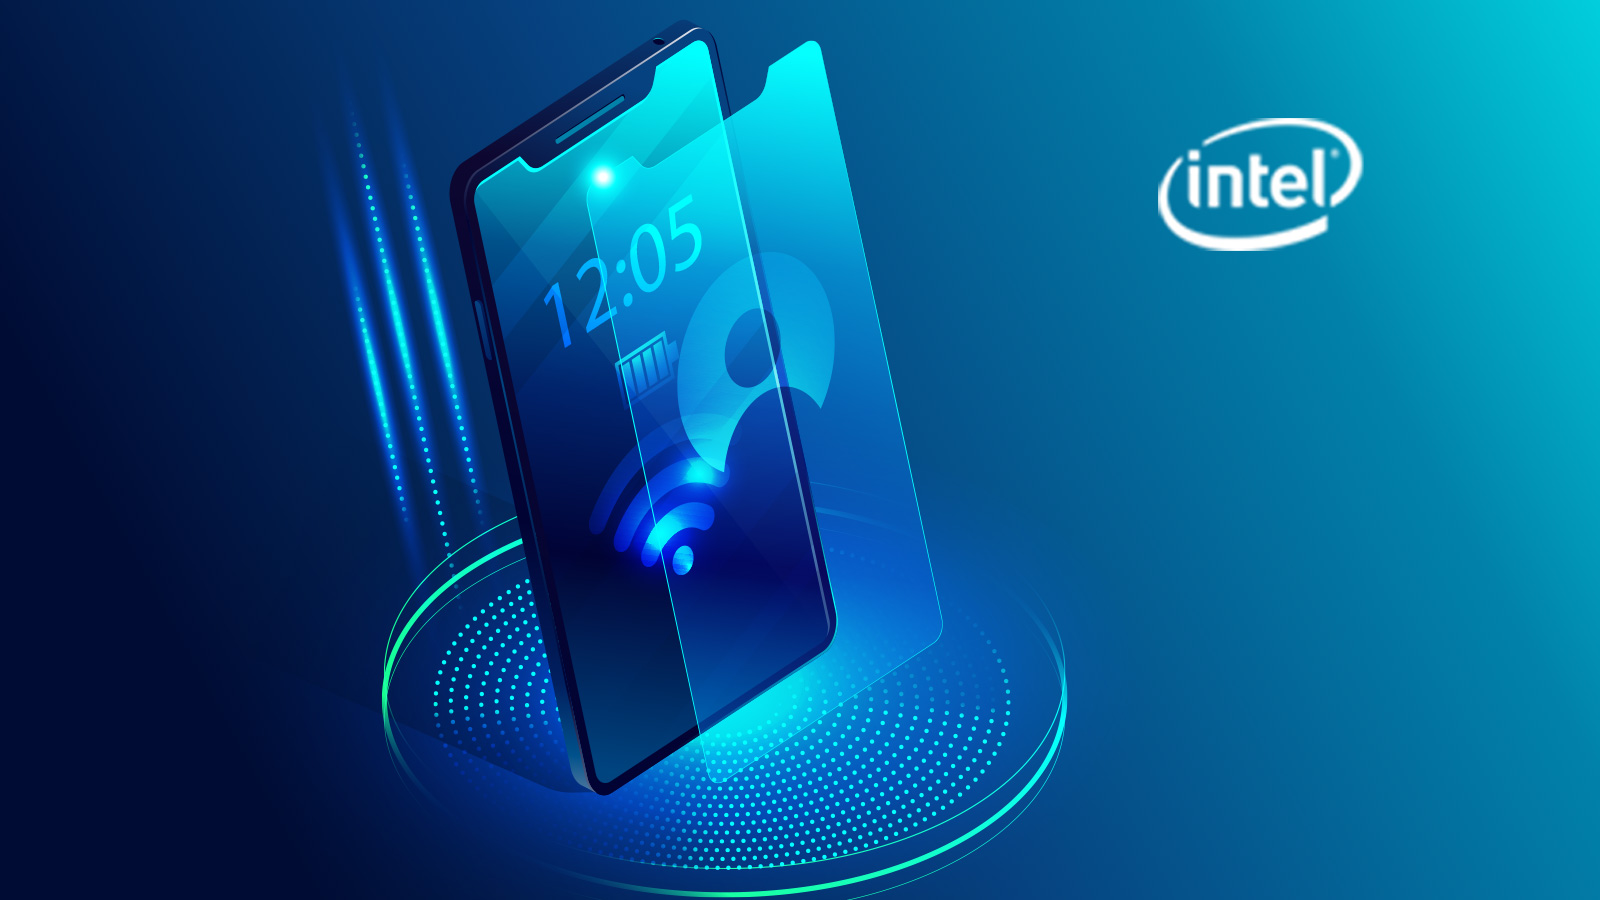 Apple Acquires Intel Smartphone Modem Business for $1 Billion